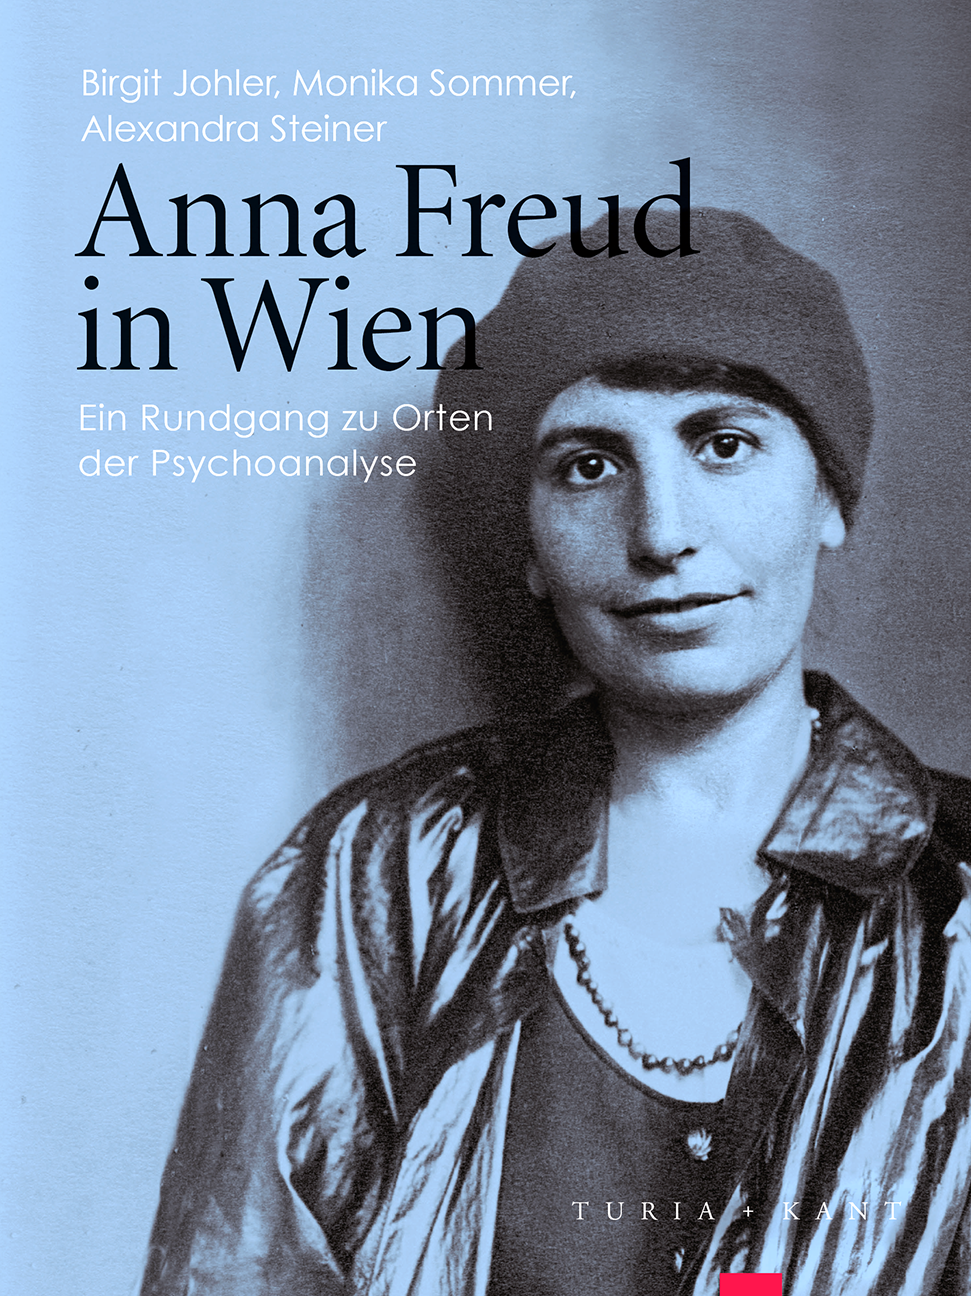 anna freud 2 Anna freud was her father's closest collaborator yet she harbored secrets that could have shaken the foundations of his growing legacy was his analysis of her an erotic echo chamber were she .